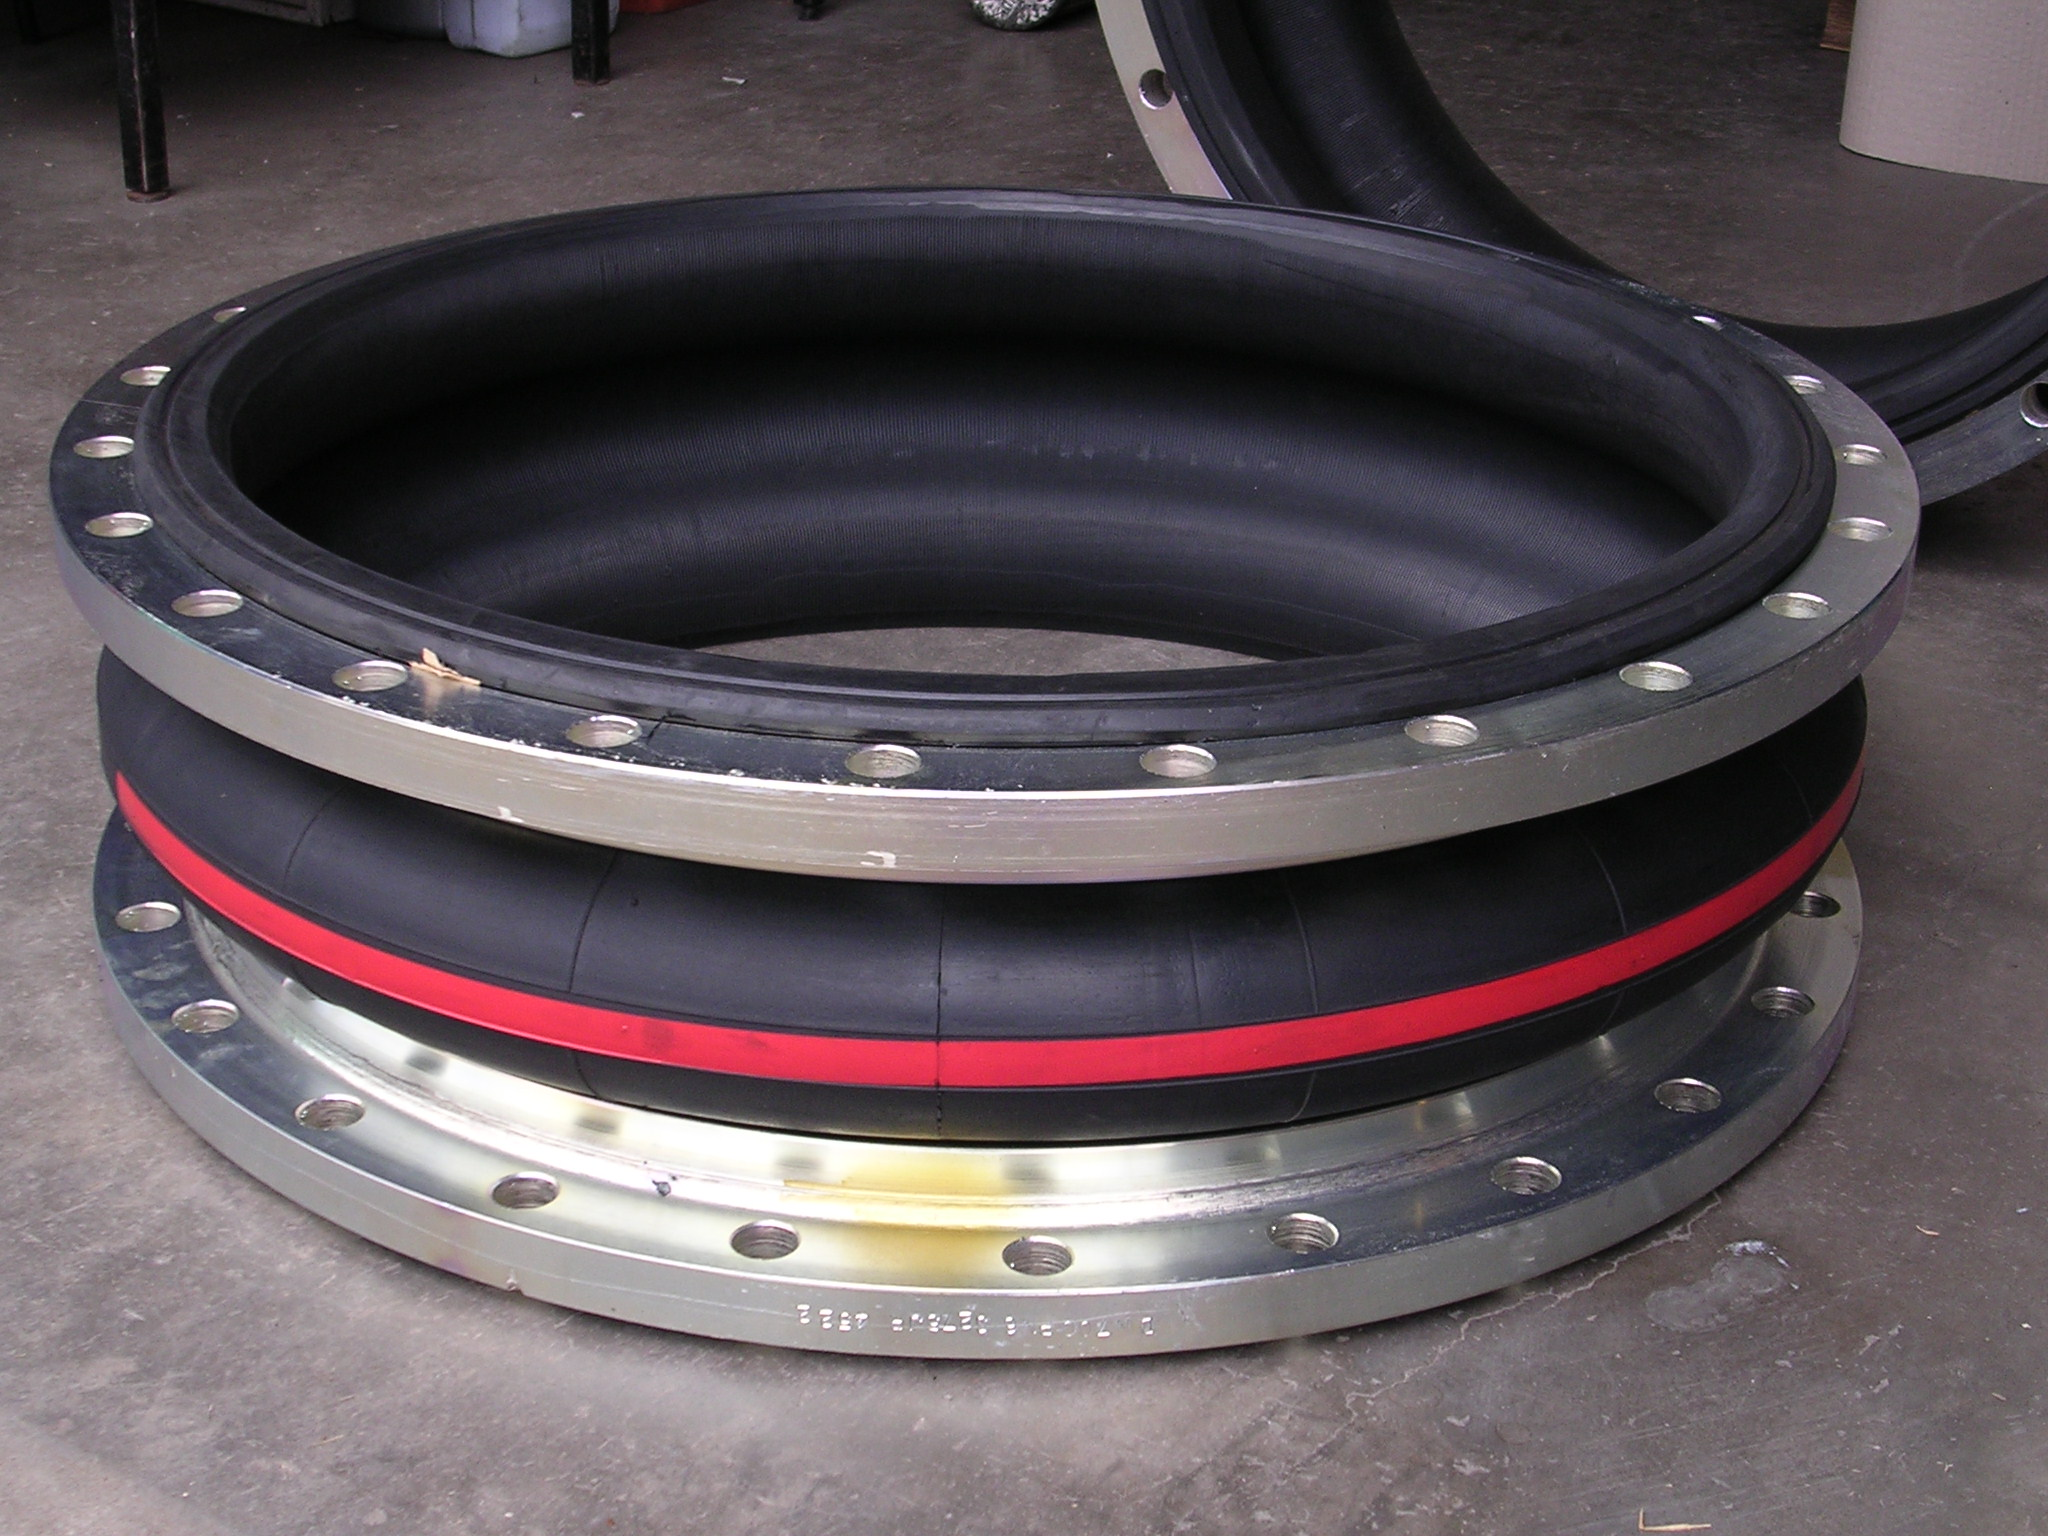 MeccomExpansionJoint